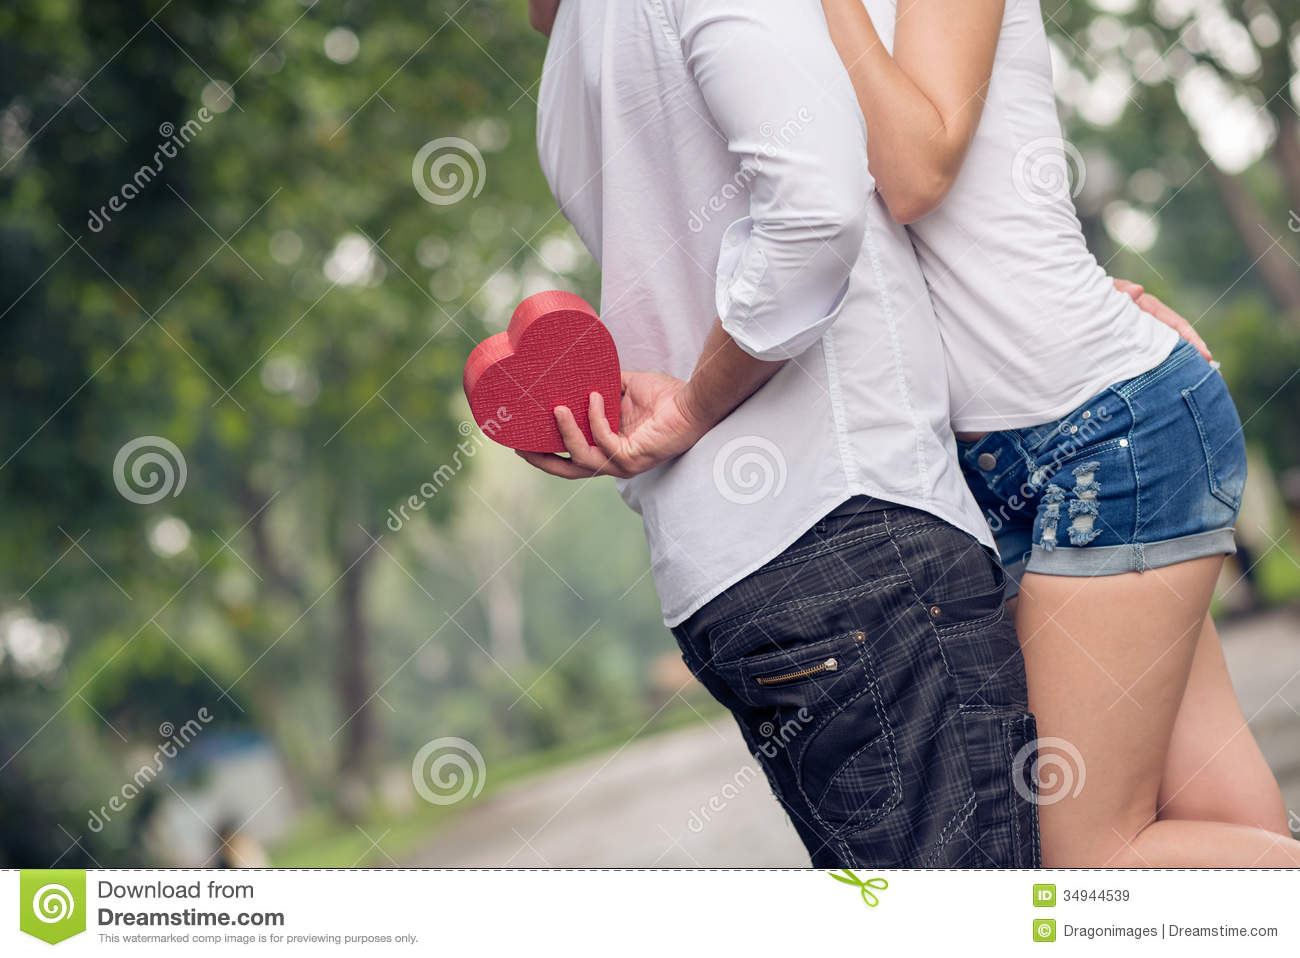 Signs youre dating a less affectionate girl